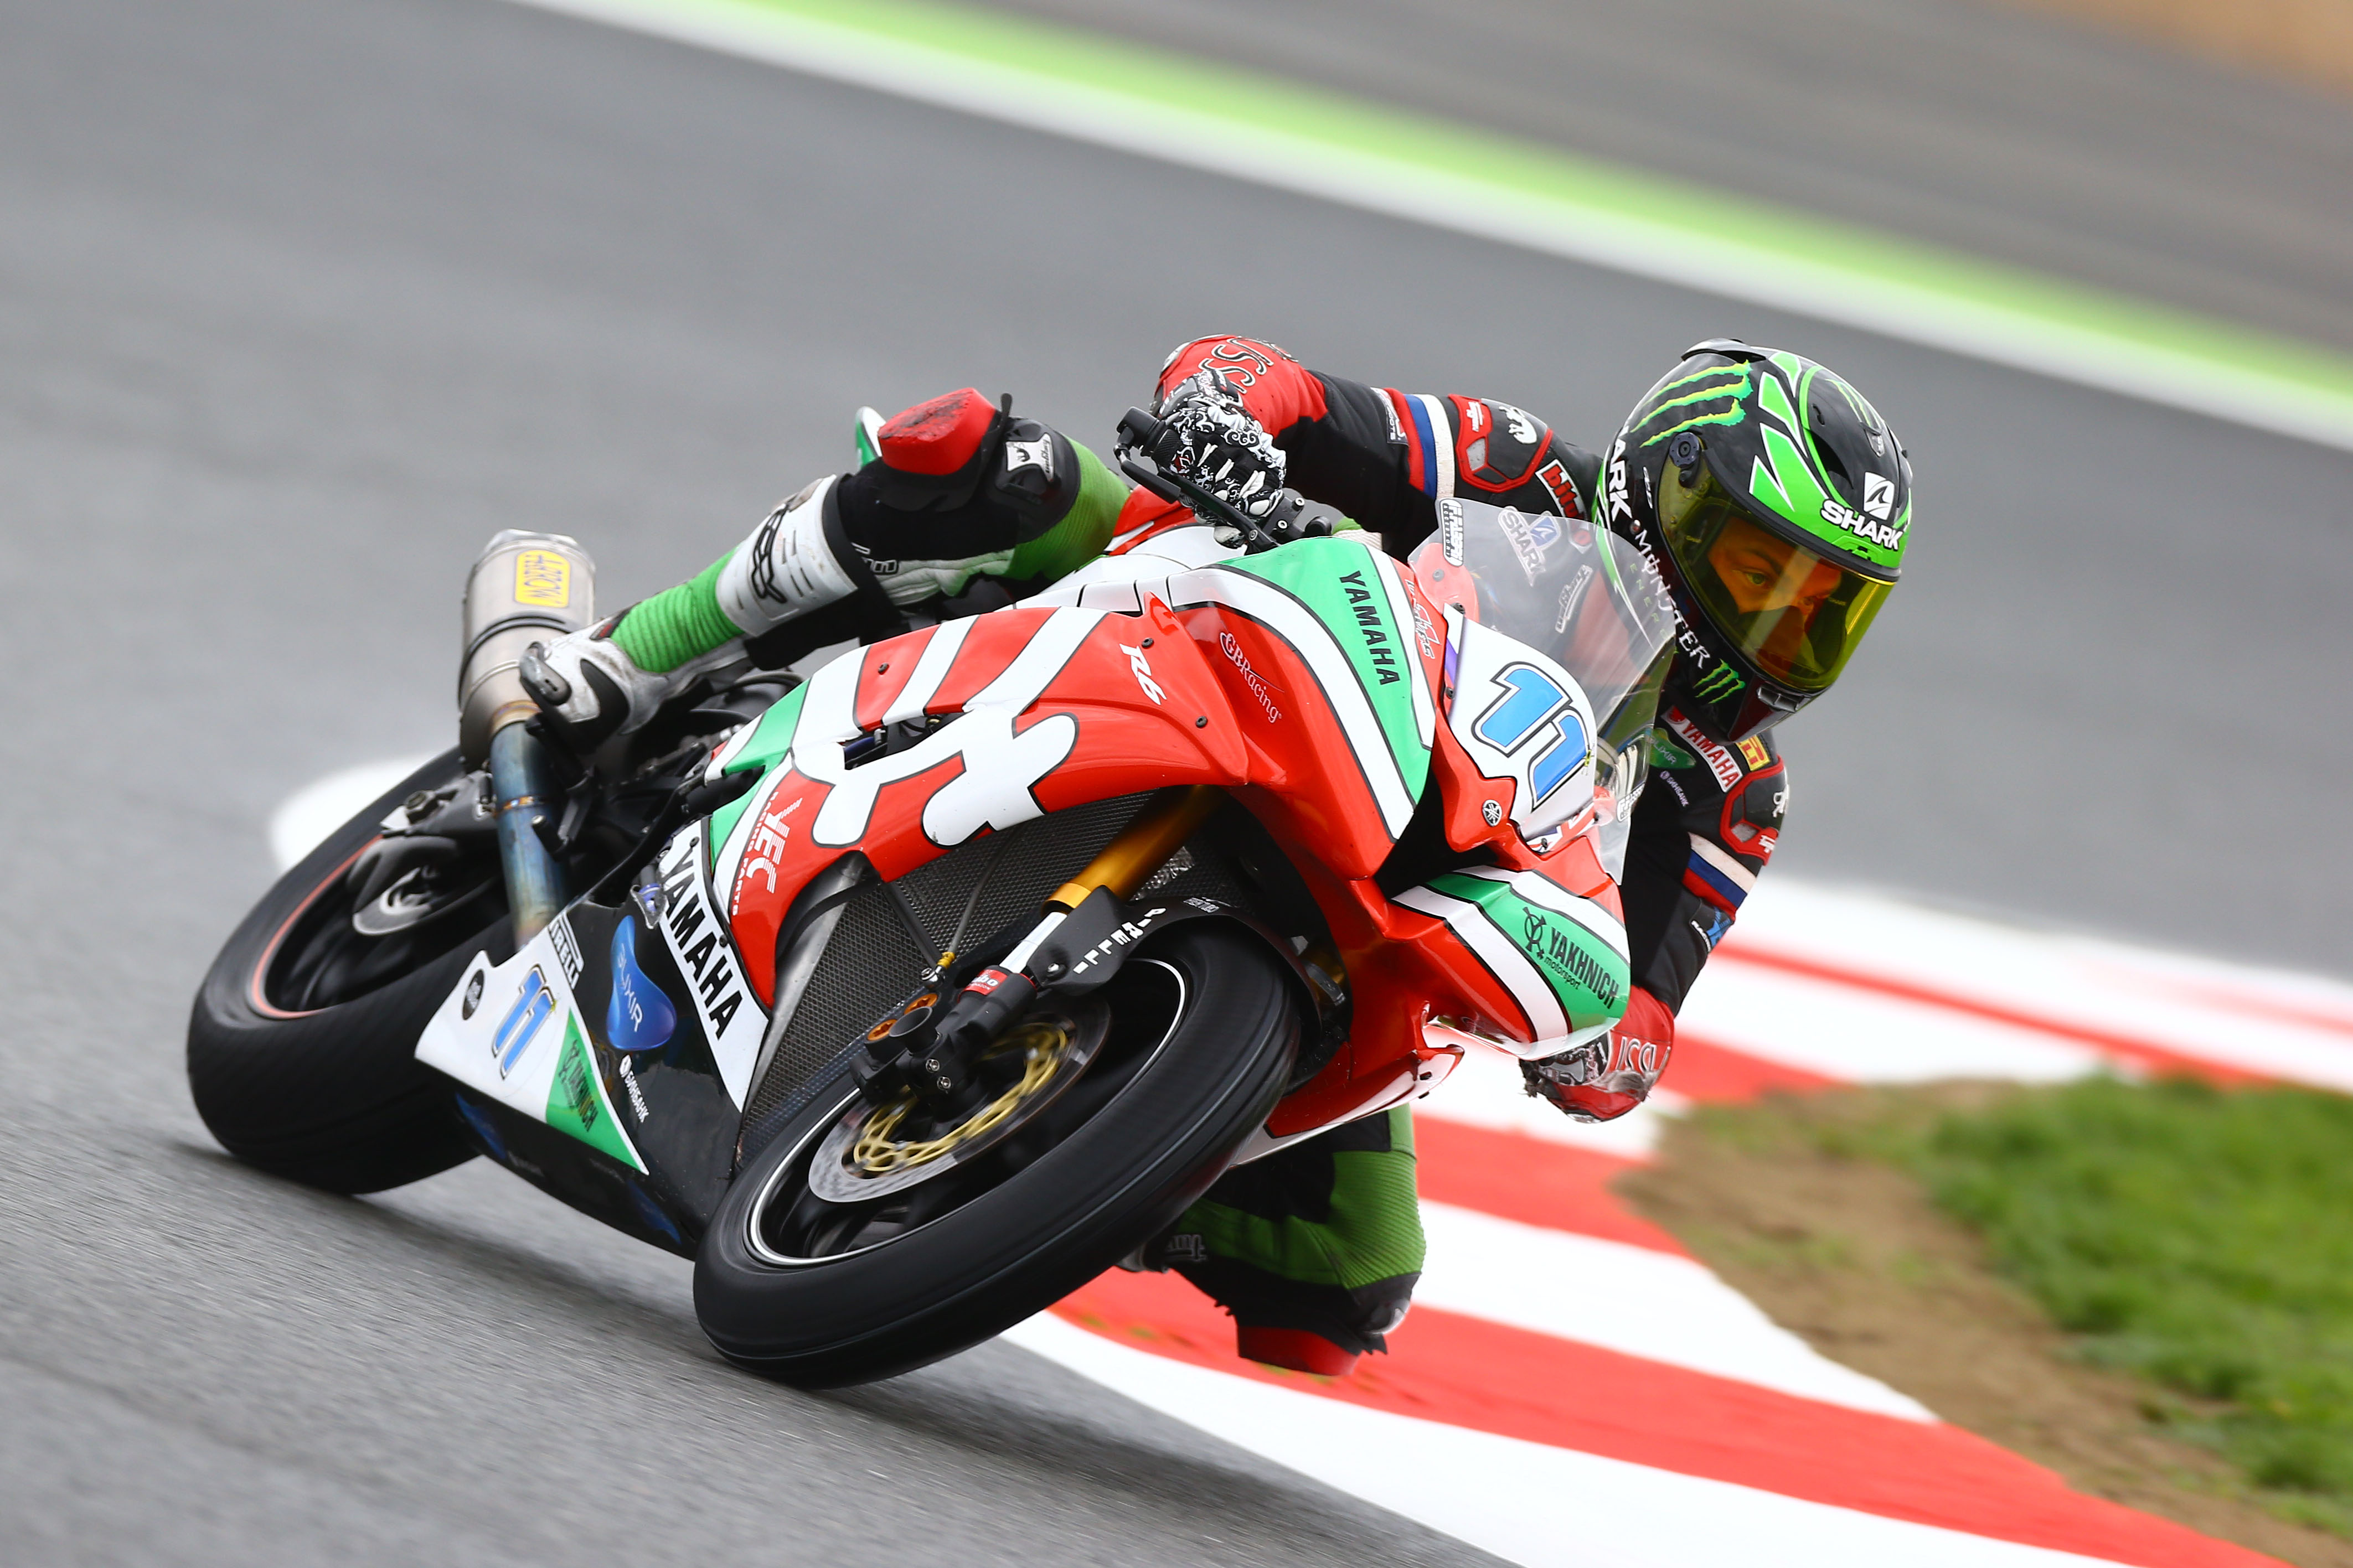 Sam Lowes to ride for Speed Up in Moto2